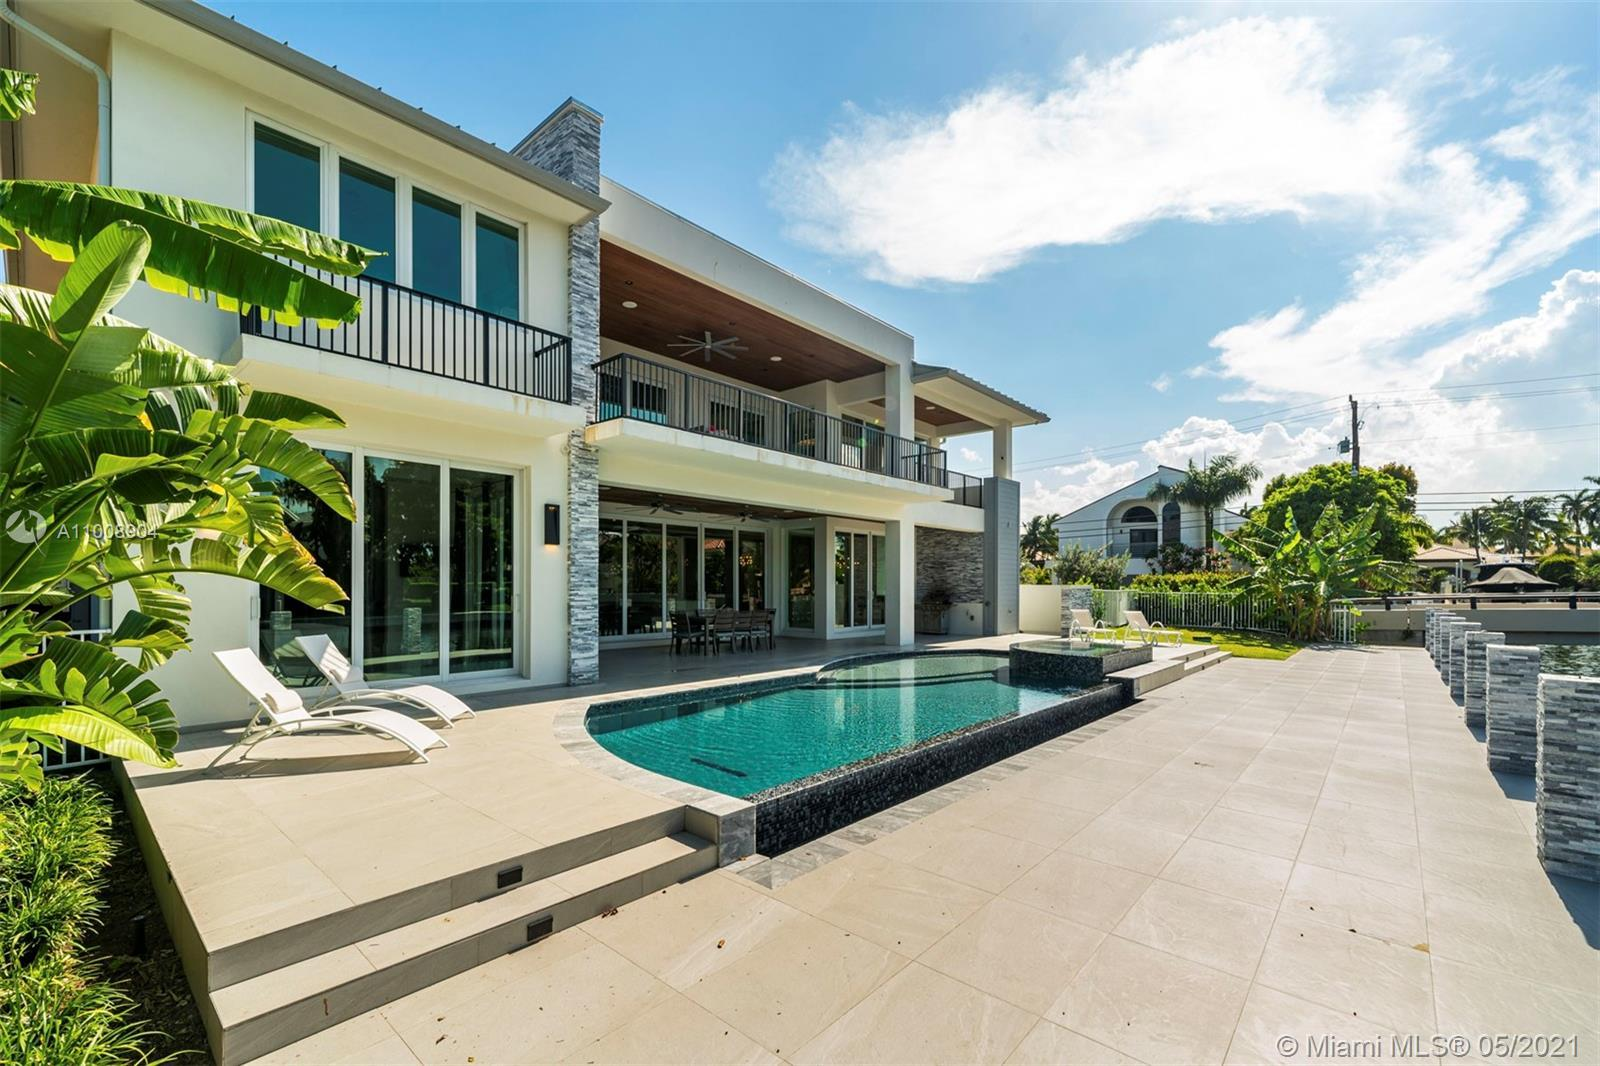 INCREDIBLE HOME IN ONE OF THE BEST NEIGHBORHOODS IN LAS OLAS, SEVEN ISLES. GORGEOUS OPEN & SPACIOUS